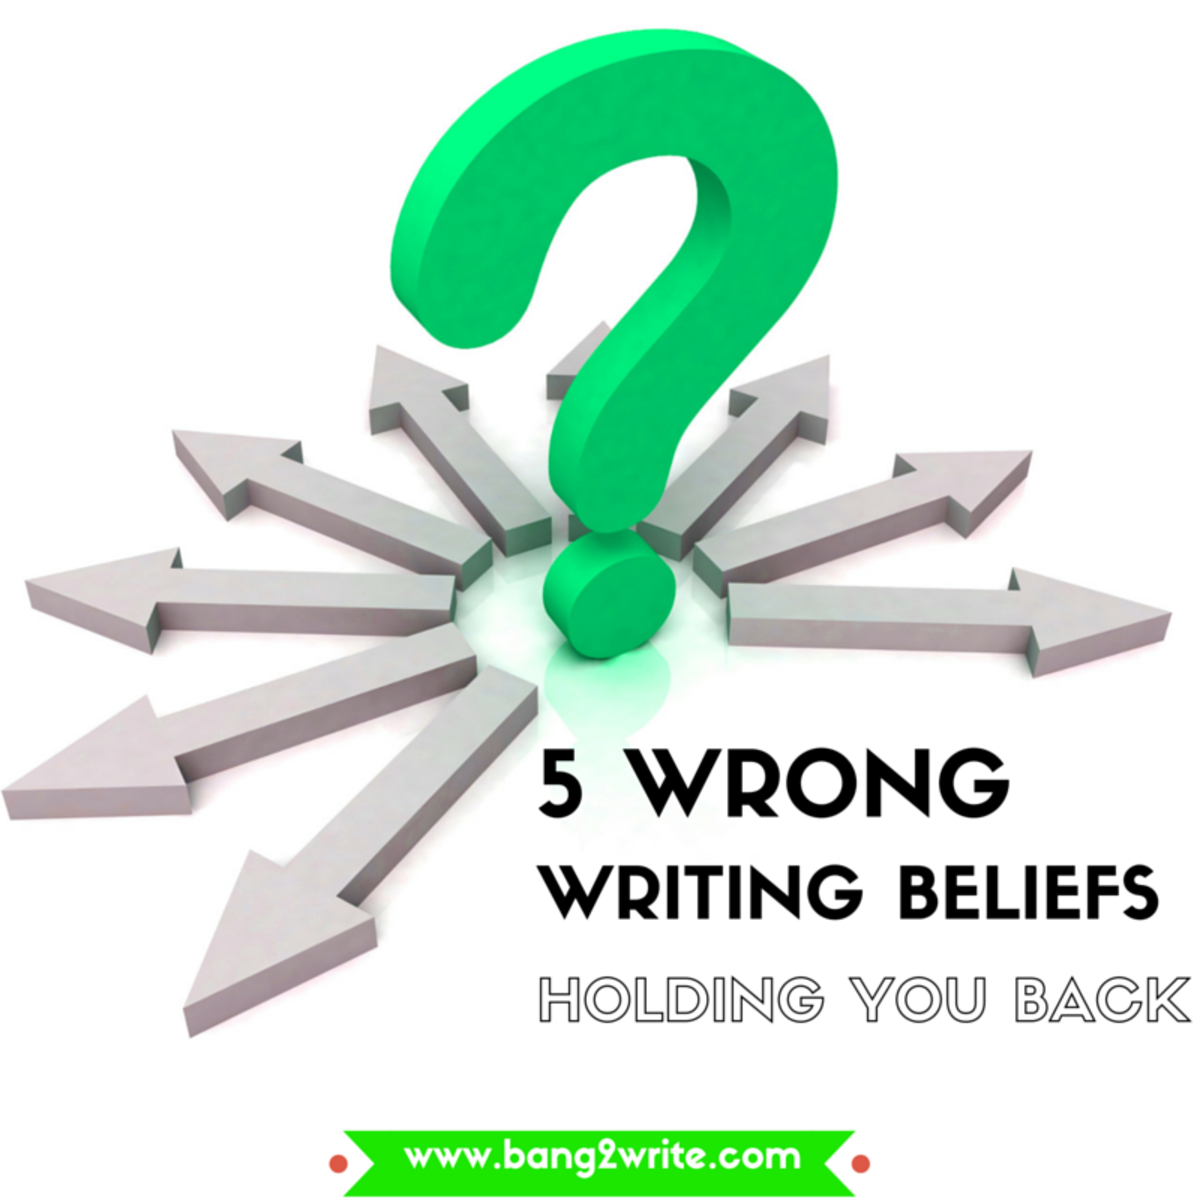 SUBMISSIONS INSANITY: 5 Wrong Writing Beliefs That Will Hold You Back In 2016 by Lucy V. Hay | Script Magazine #scriptchat #amwriting